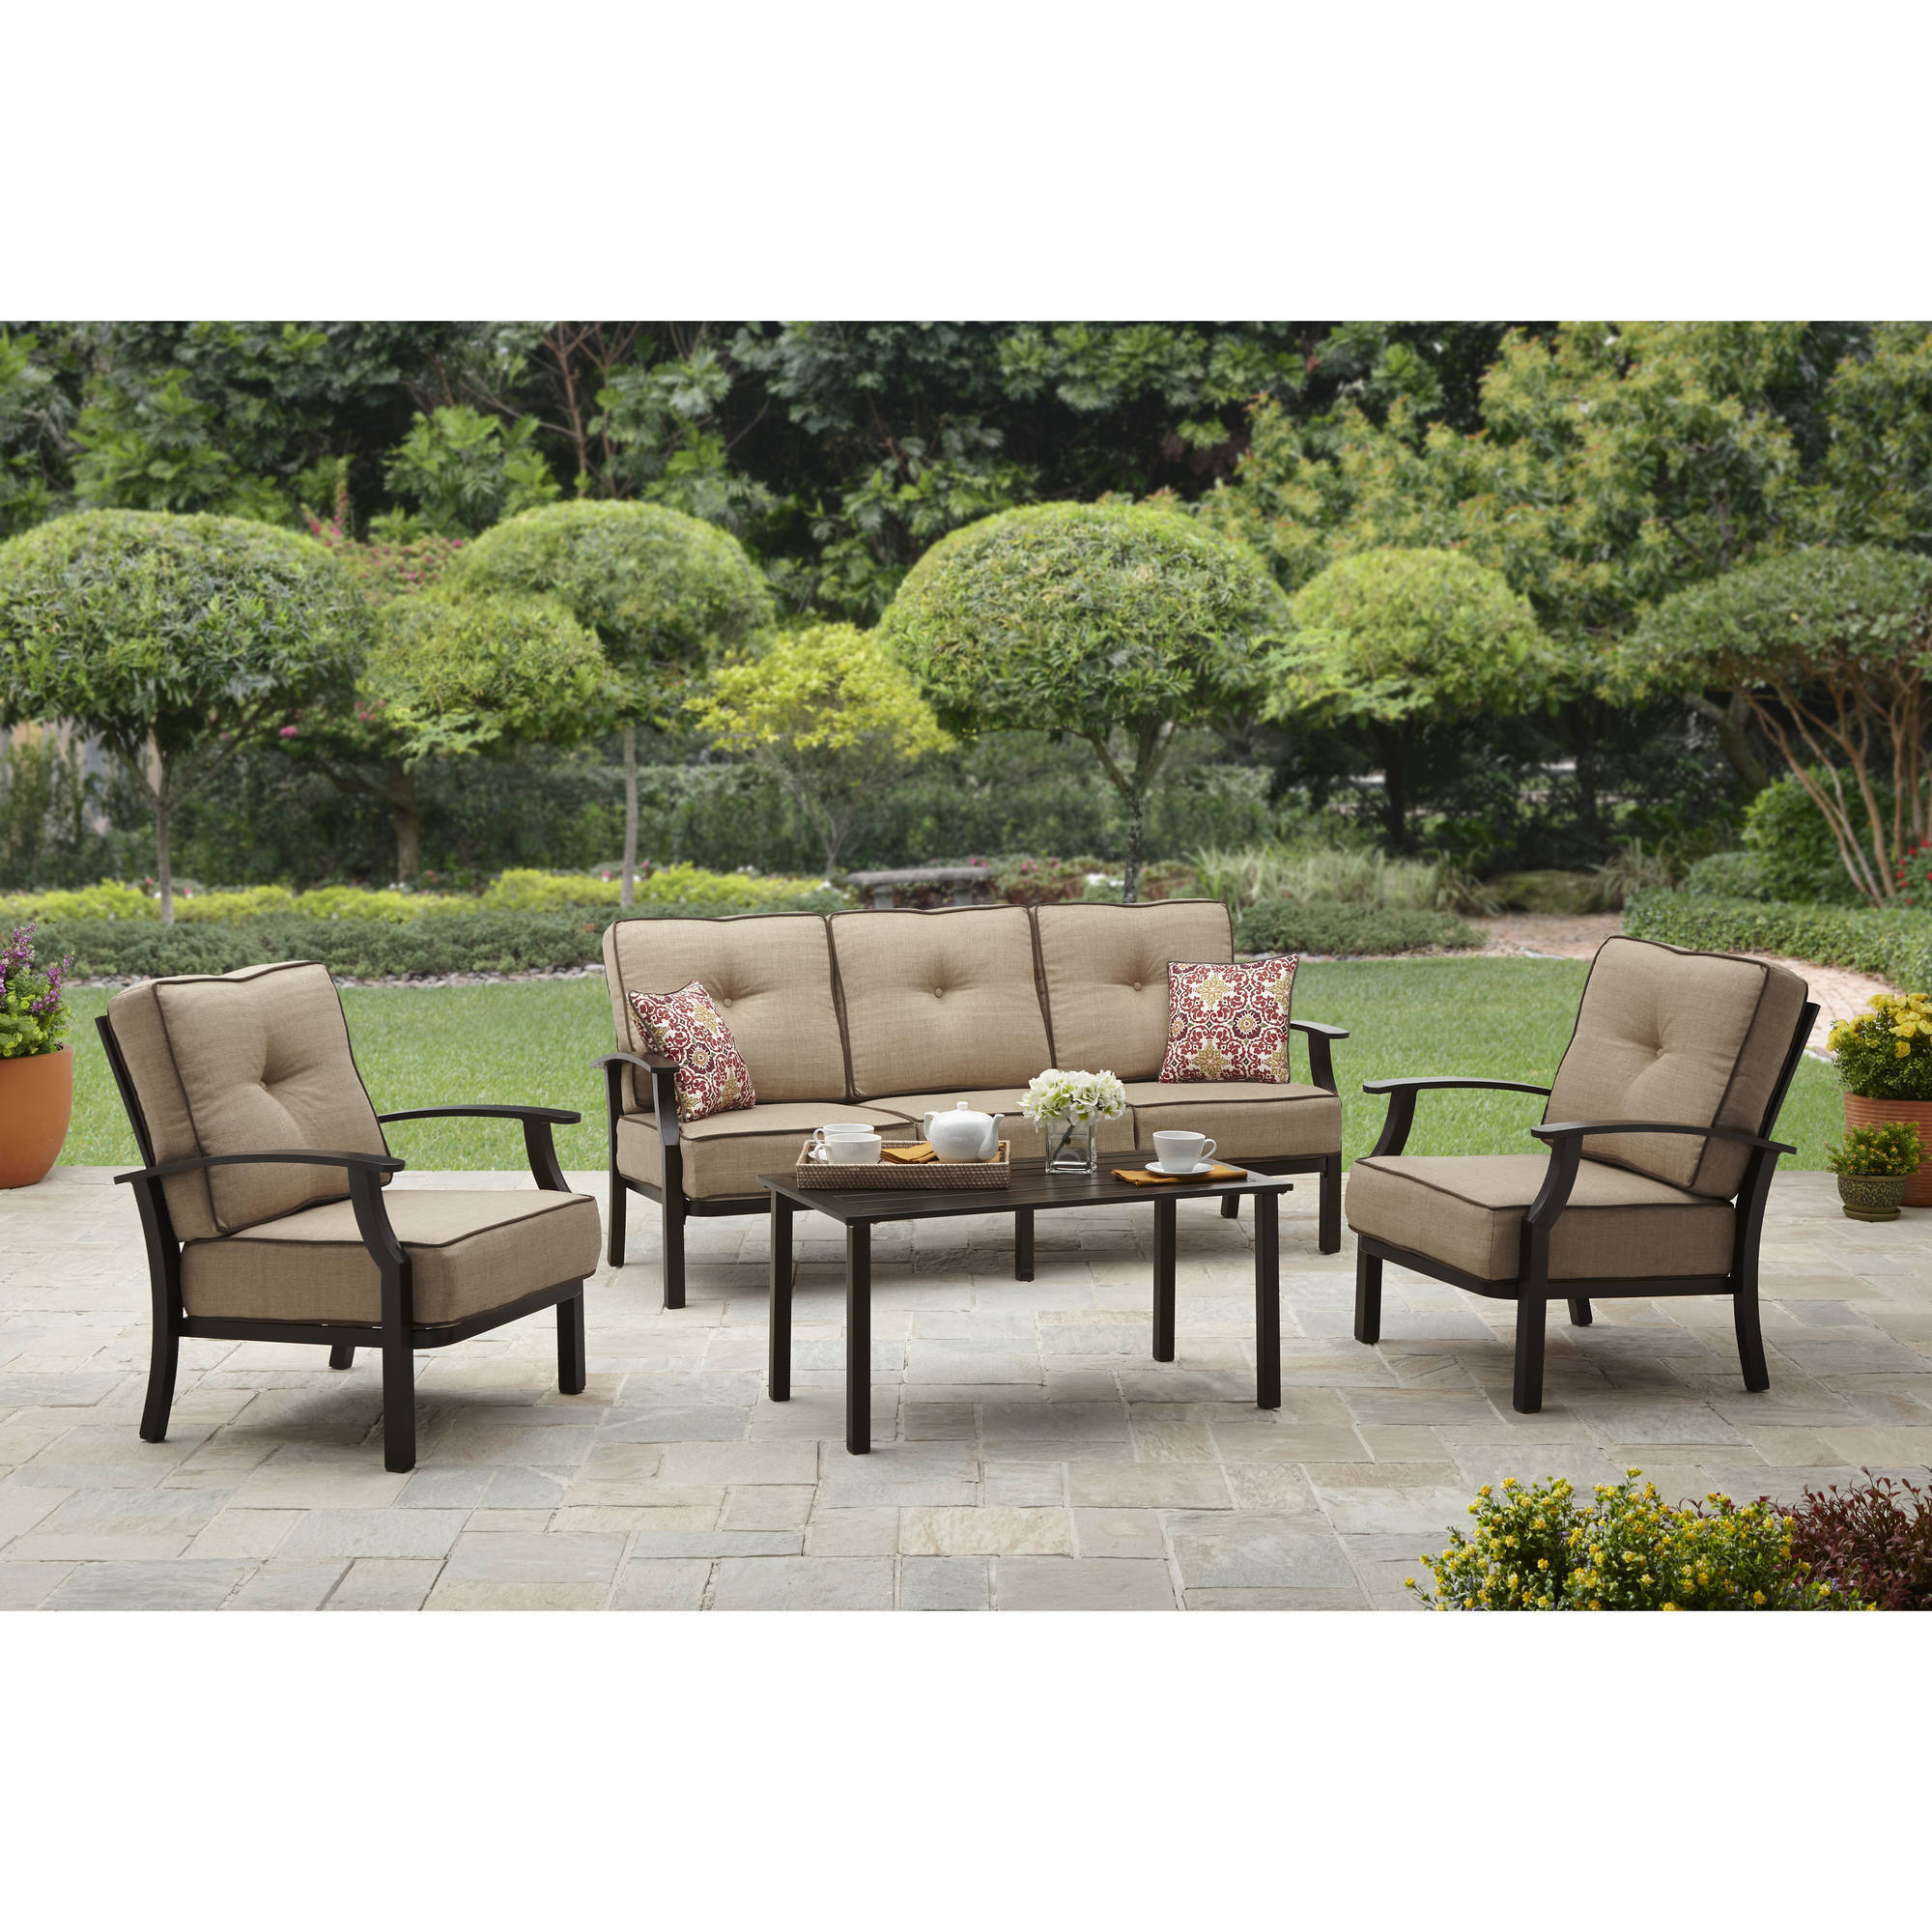 Better Homes And Garden Carter Hills Outdoor Conversation Set, Seats 5 Part 32